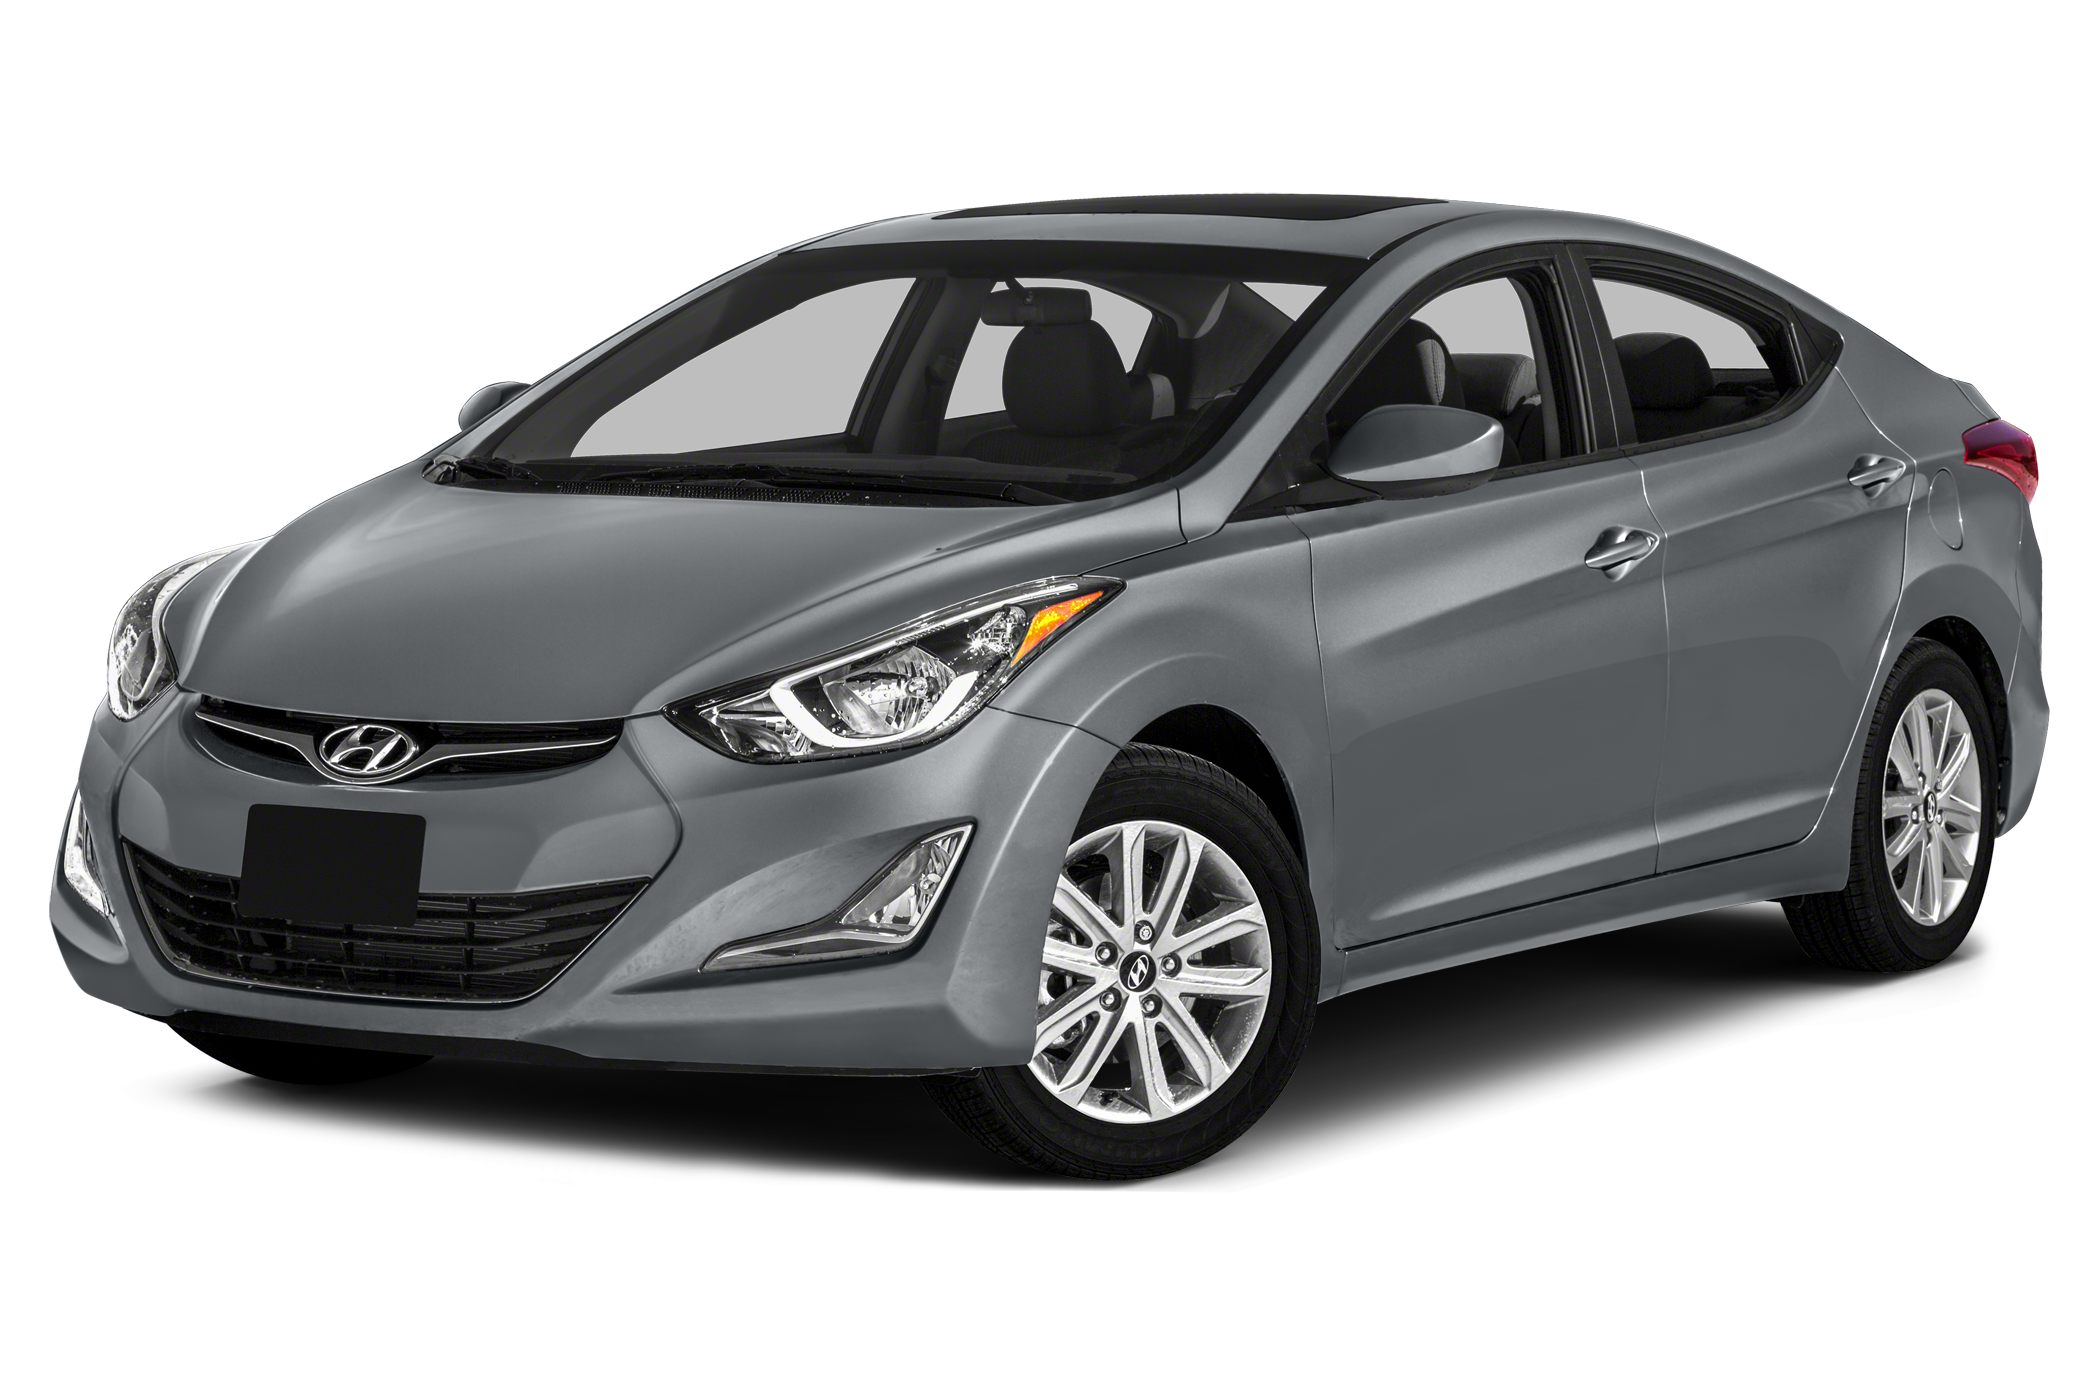 2015 Hyundai Elantra Sport Sedan for sale in Virginia Beach for $19,106 with 5 miles.